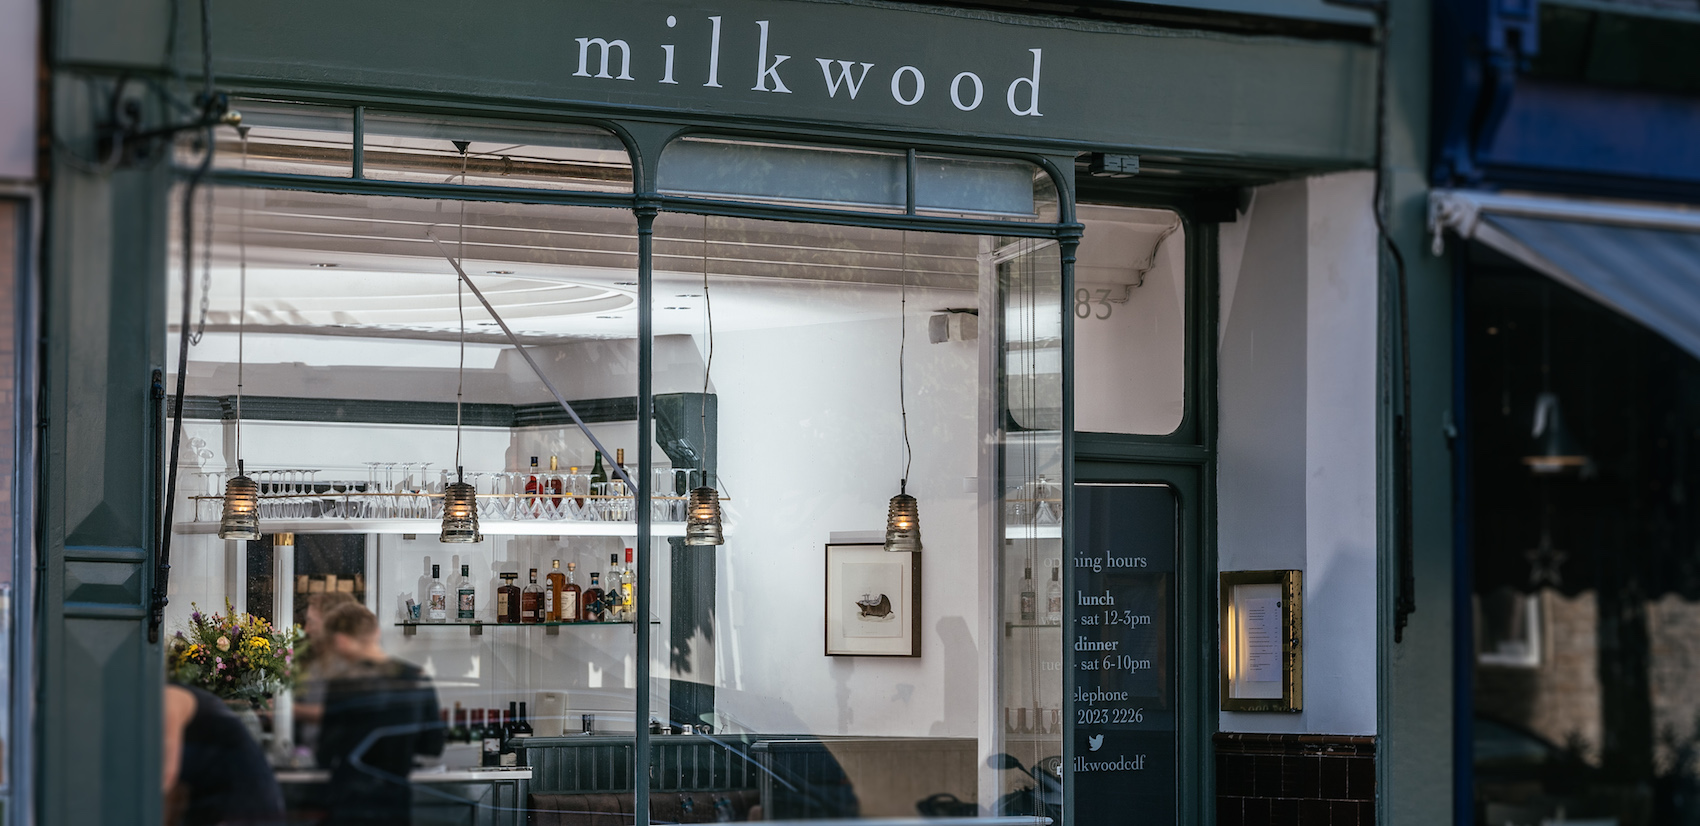 Food at Milkwood